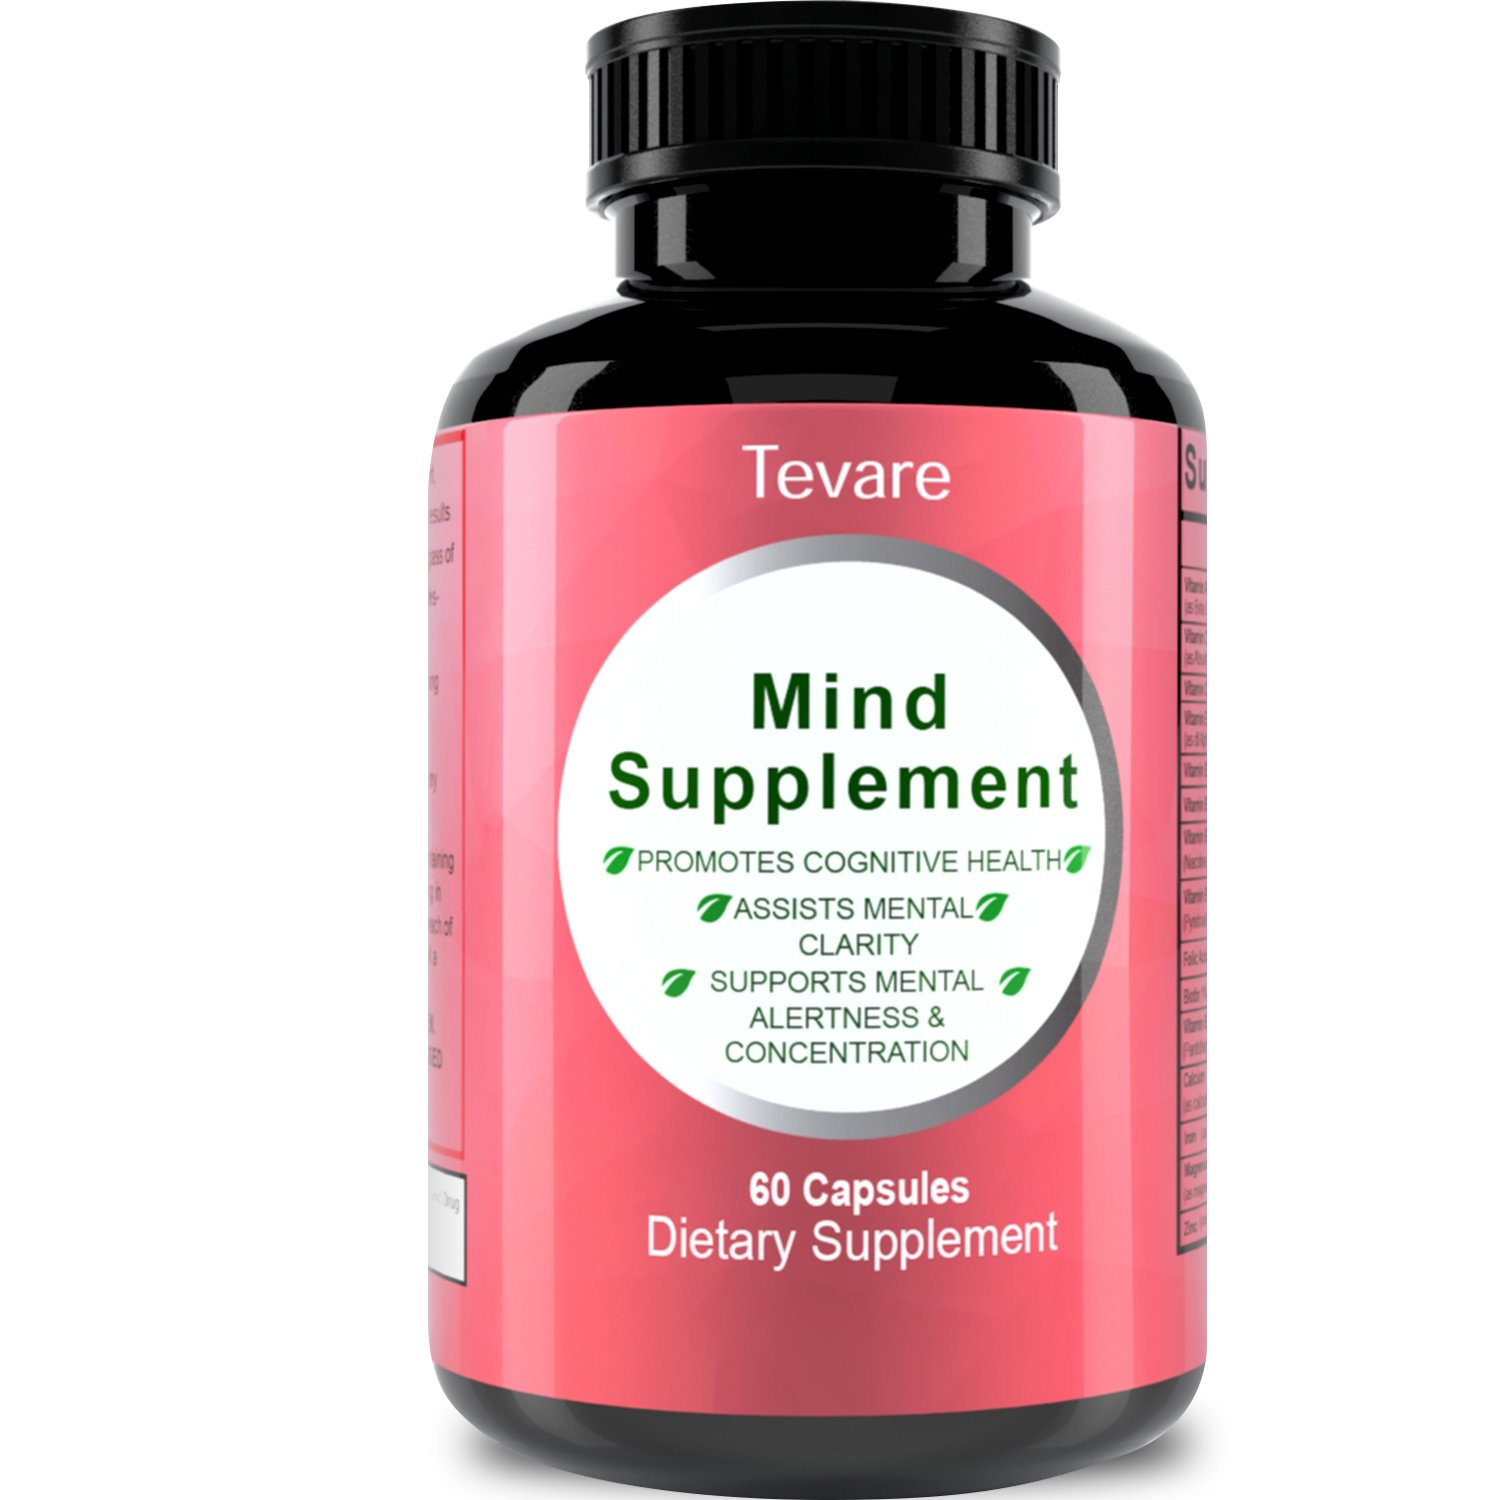 Memory Booster - Focus Enhancer - Mind Supplement with Pure and Natural Green Tea Leaf + DMAE Bitartrate + Glutamic Acid + Bacopa Extract - Mind Matrix Cognitive Nutrition Pills Nootropic By Tevare by Tevare (Image #2)